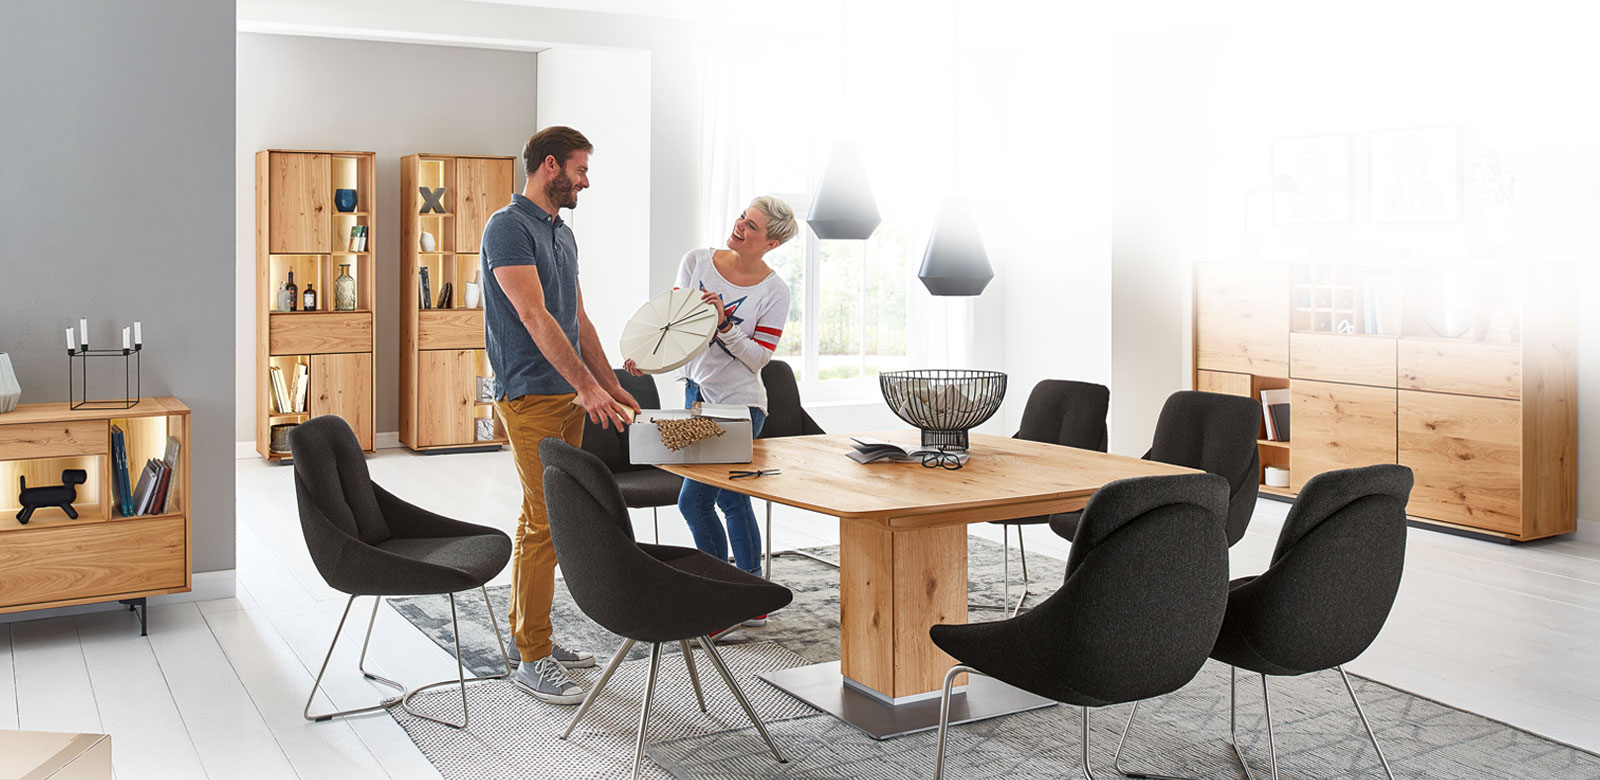 Clean design, real wood veneer and lacquer accents: the new range QUANTO